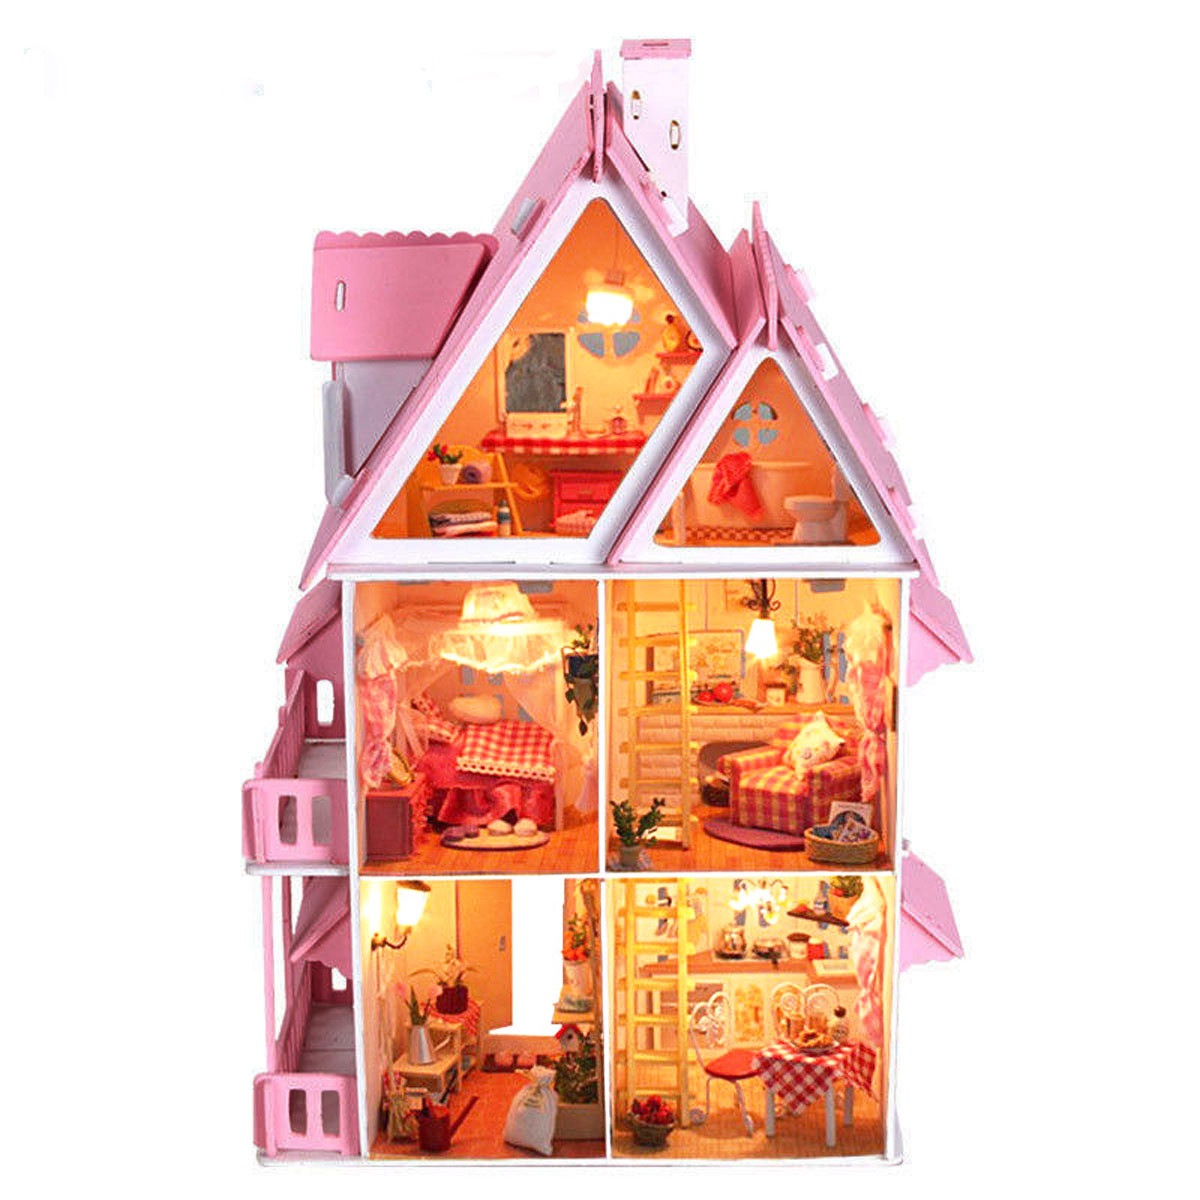 iiE Create DIY Wood Dream House With Light Miniature And Furniture Large Villa 2017 home decoration crafts diy doll house wooden doll houses miniature diy dollhouse furniture kit room led lights gift toy